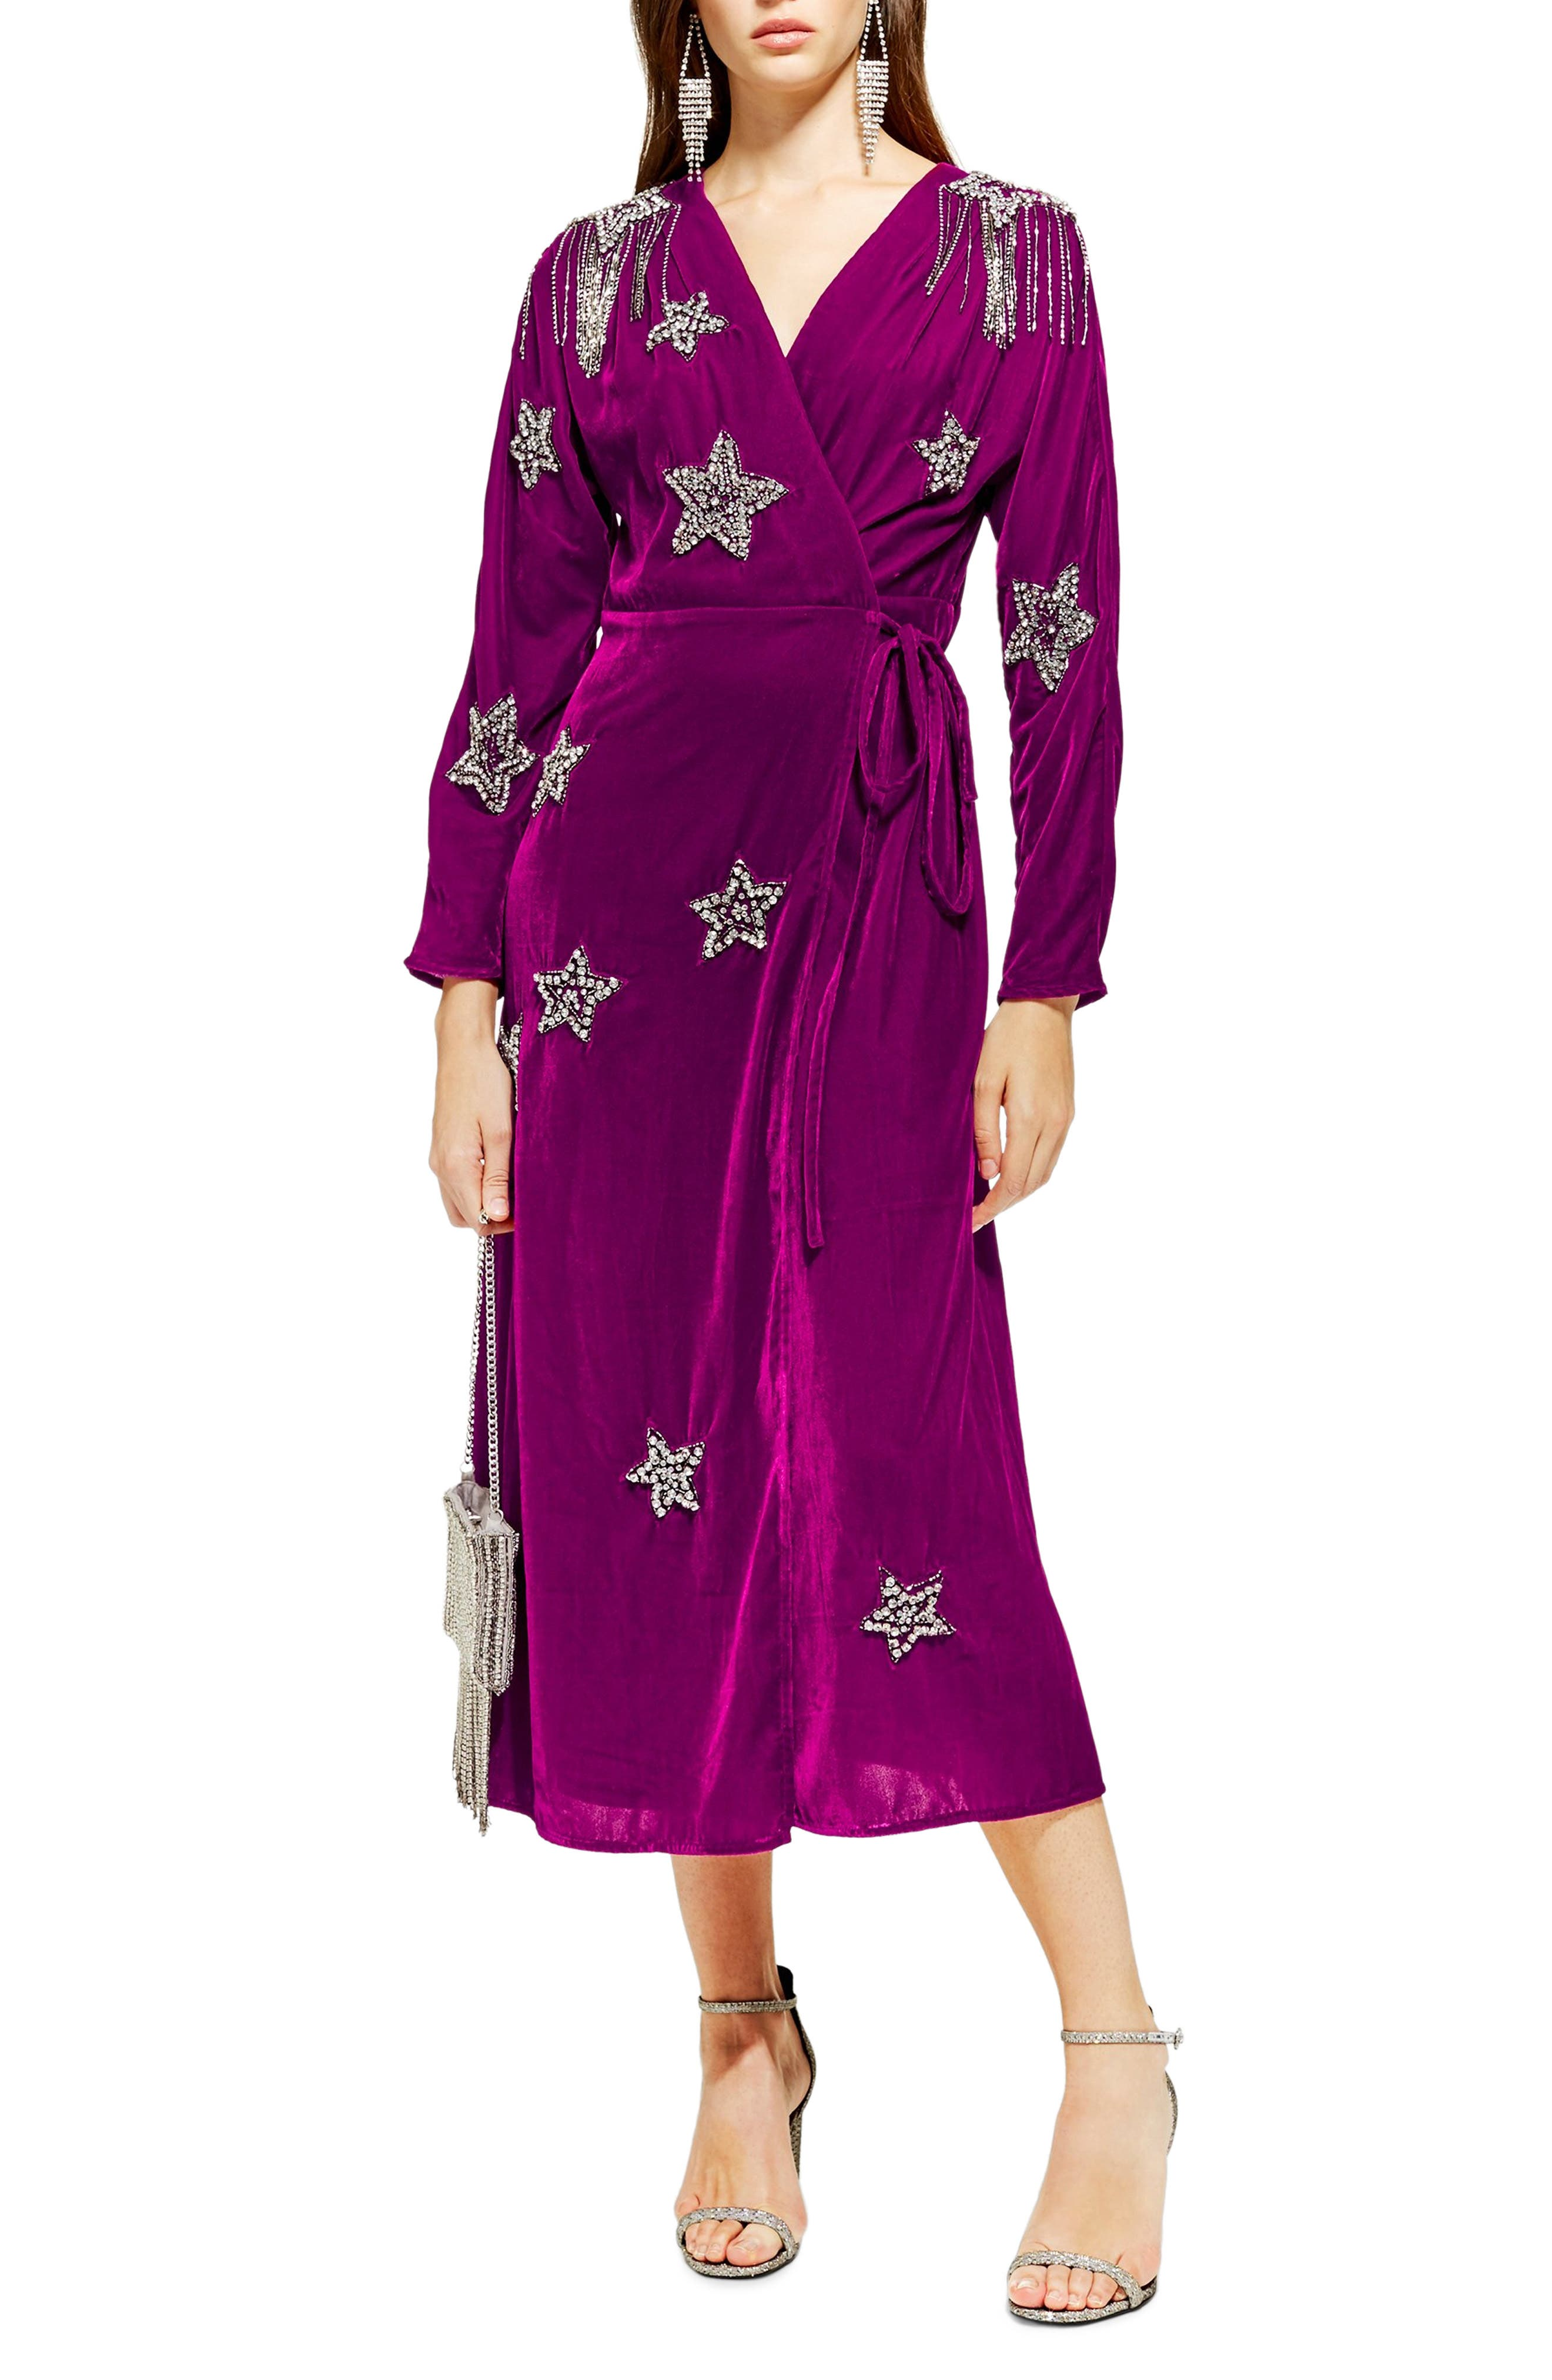 Topshop Velvet Embroidered Wrap Dress, US (fits like 0) - Purple